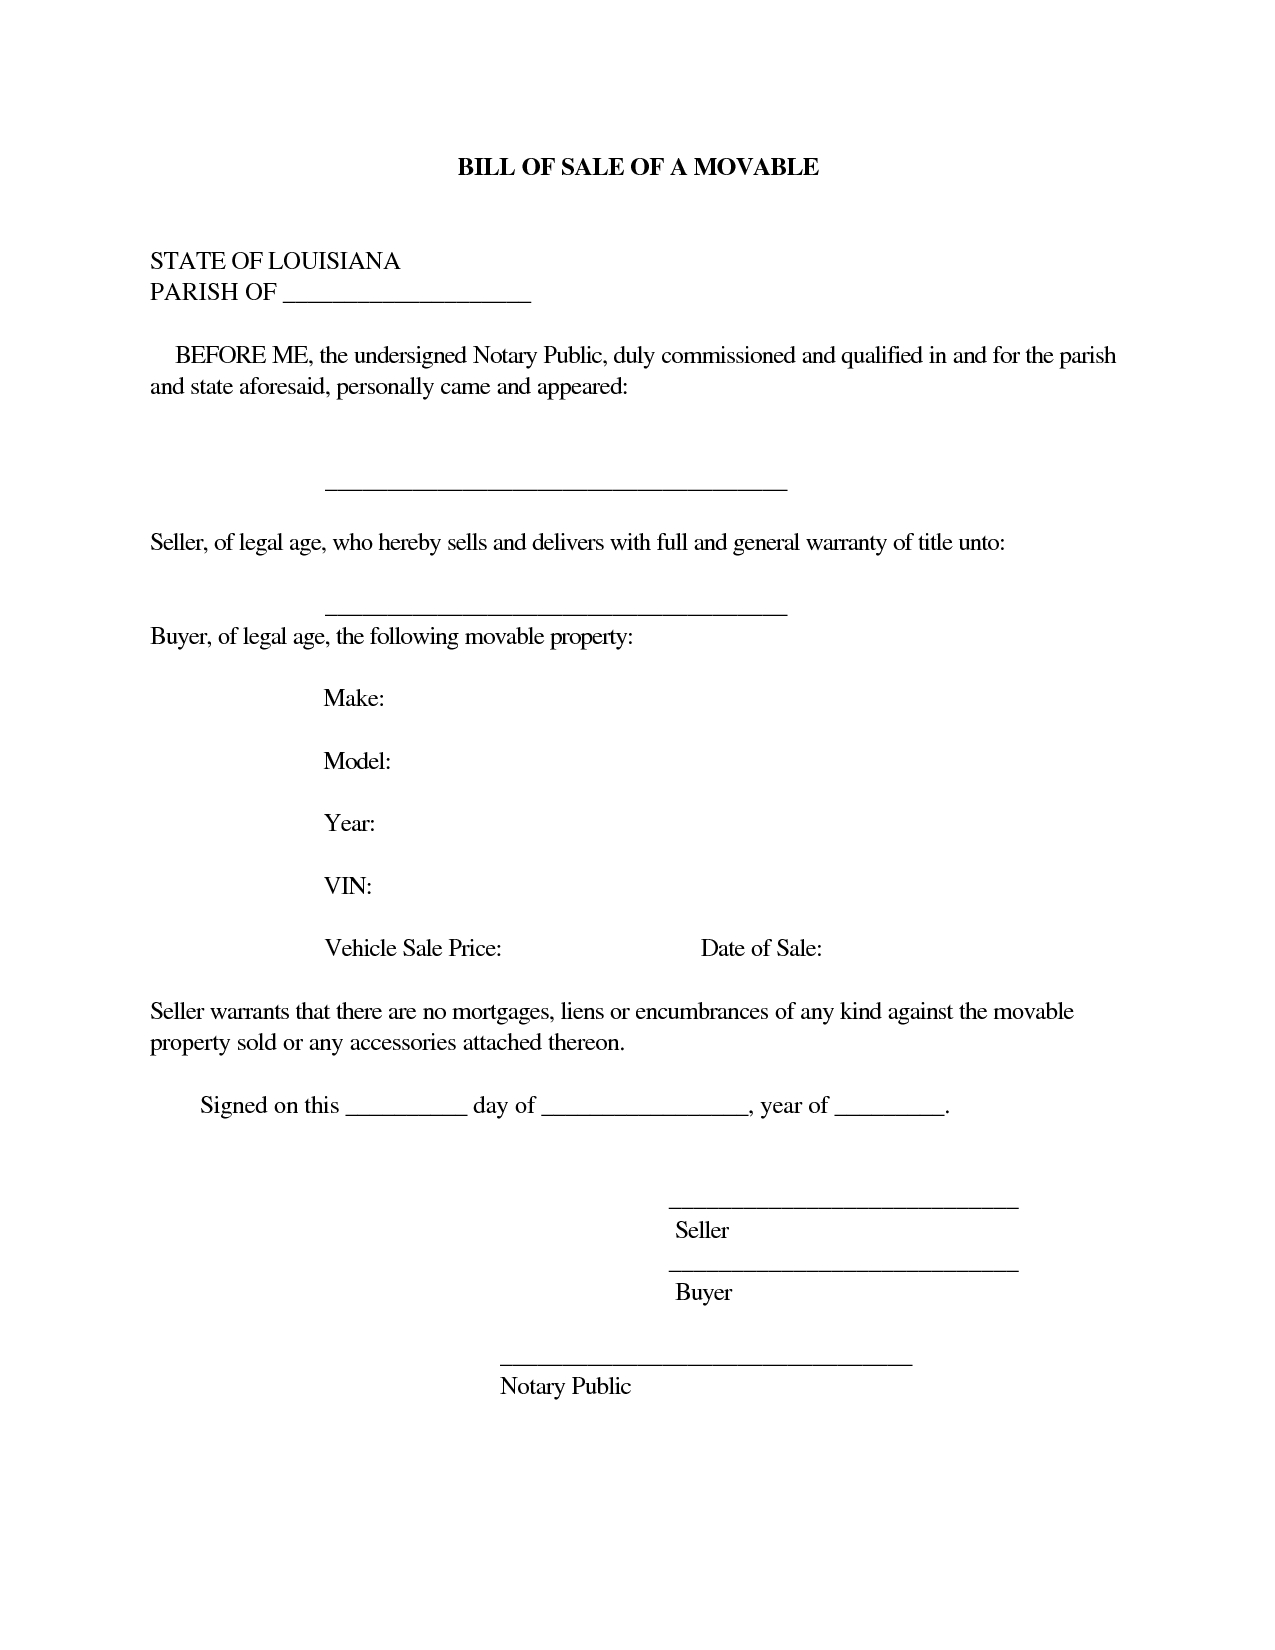 printable sample champer bill of sale form free legal documents::Car Bill of Sale Form Template Printable